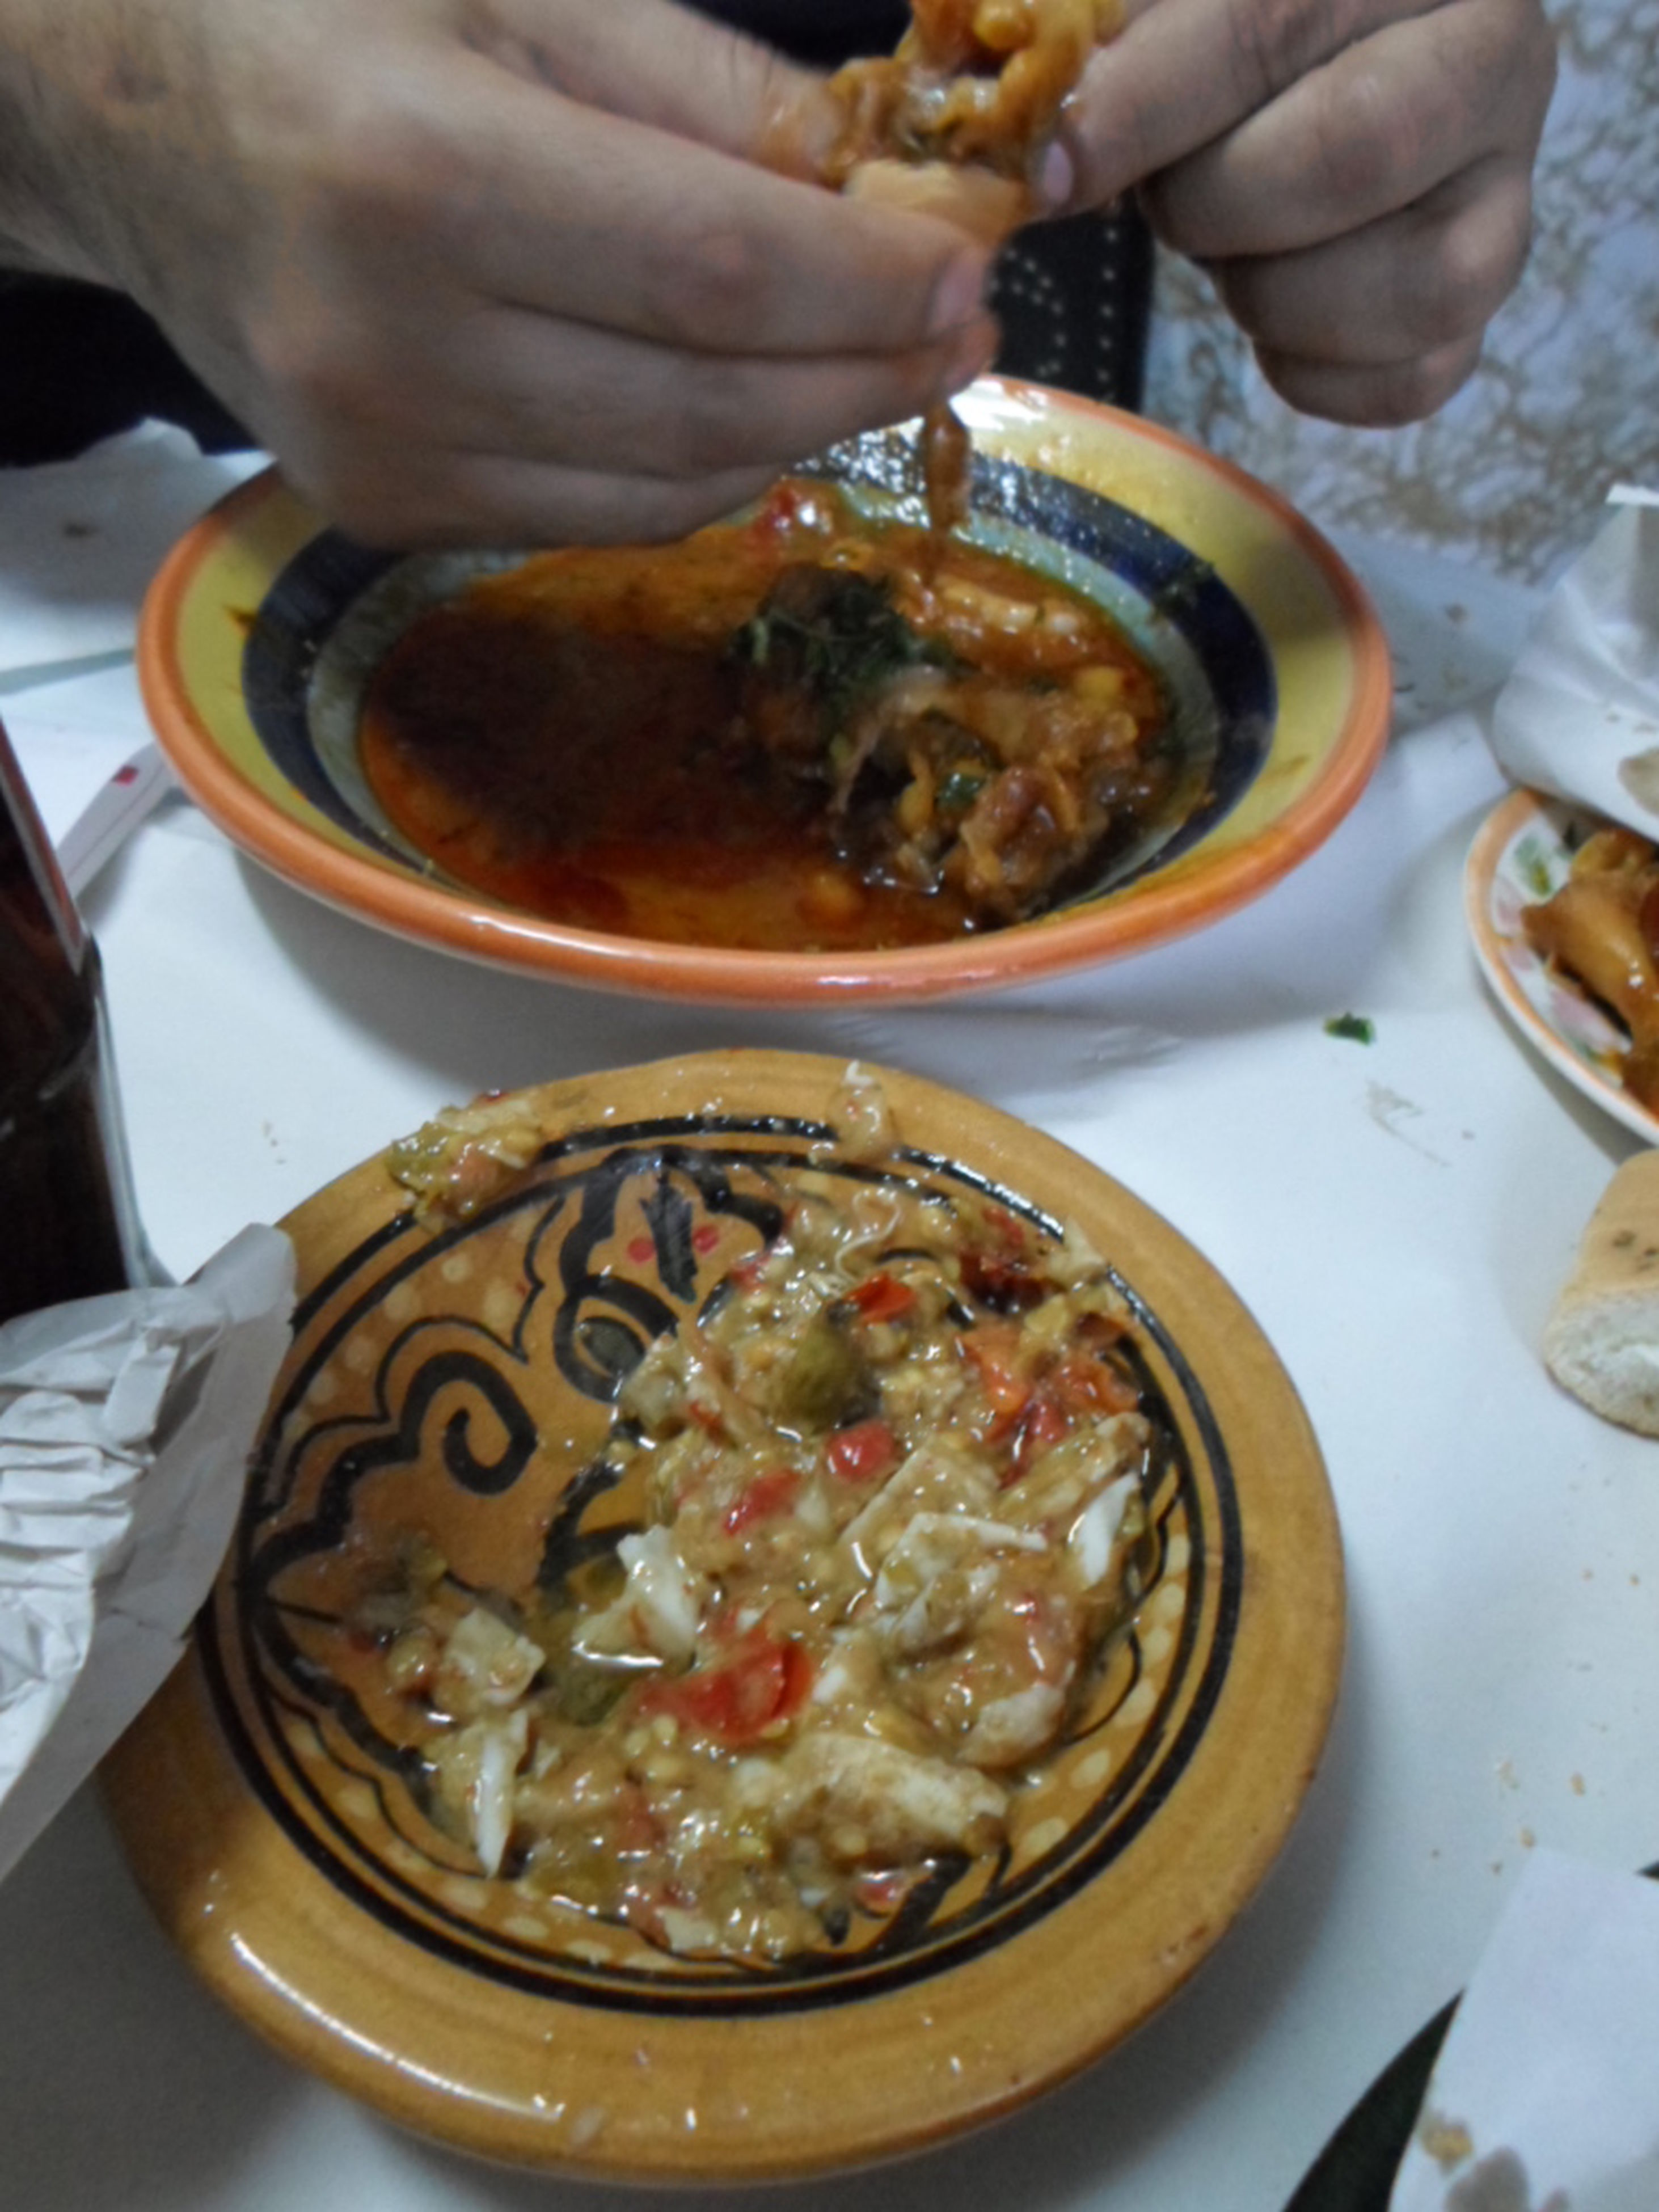 food and drink, indoors, food, person, freshness, ready-to-eat, part of, table, plate, holding, unrecognizable person, cropped, bowl, meal, healthy eating, indulgence, spoon